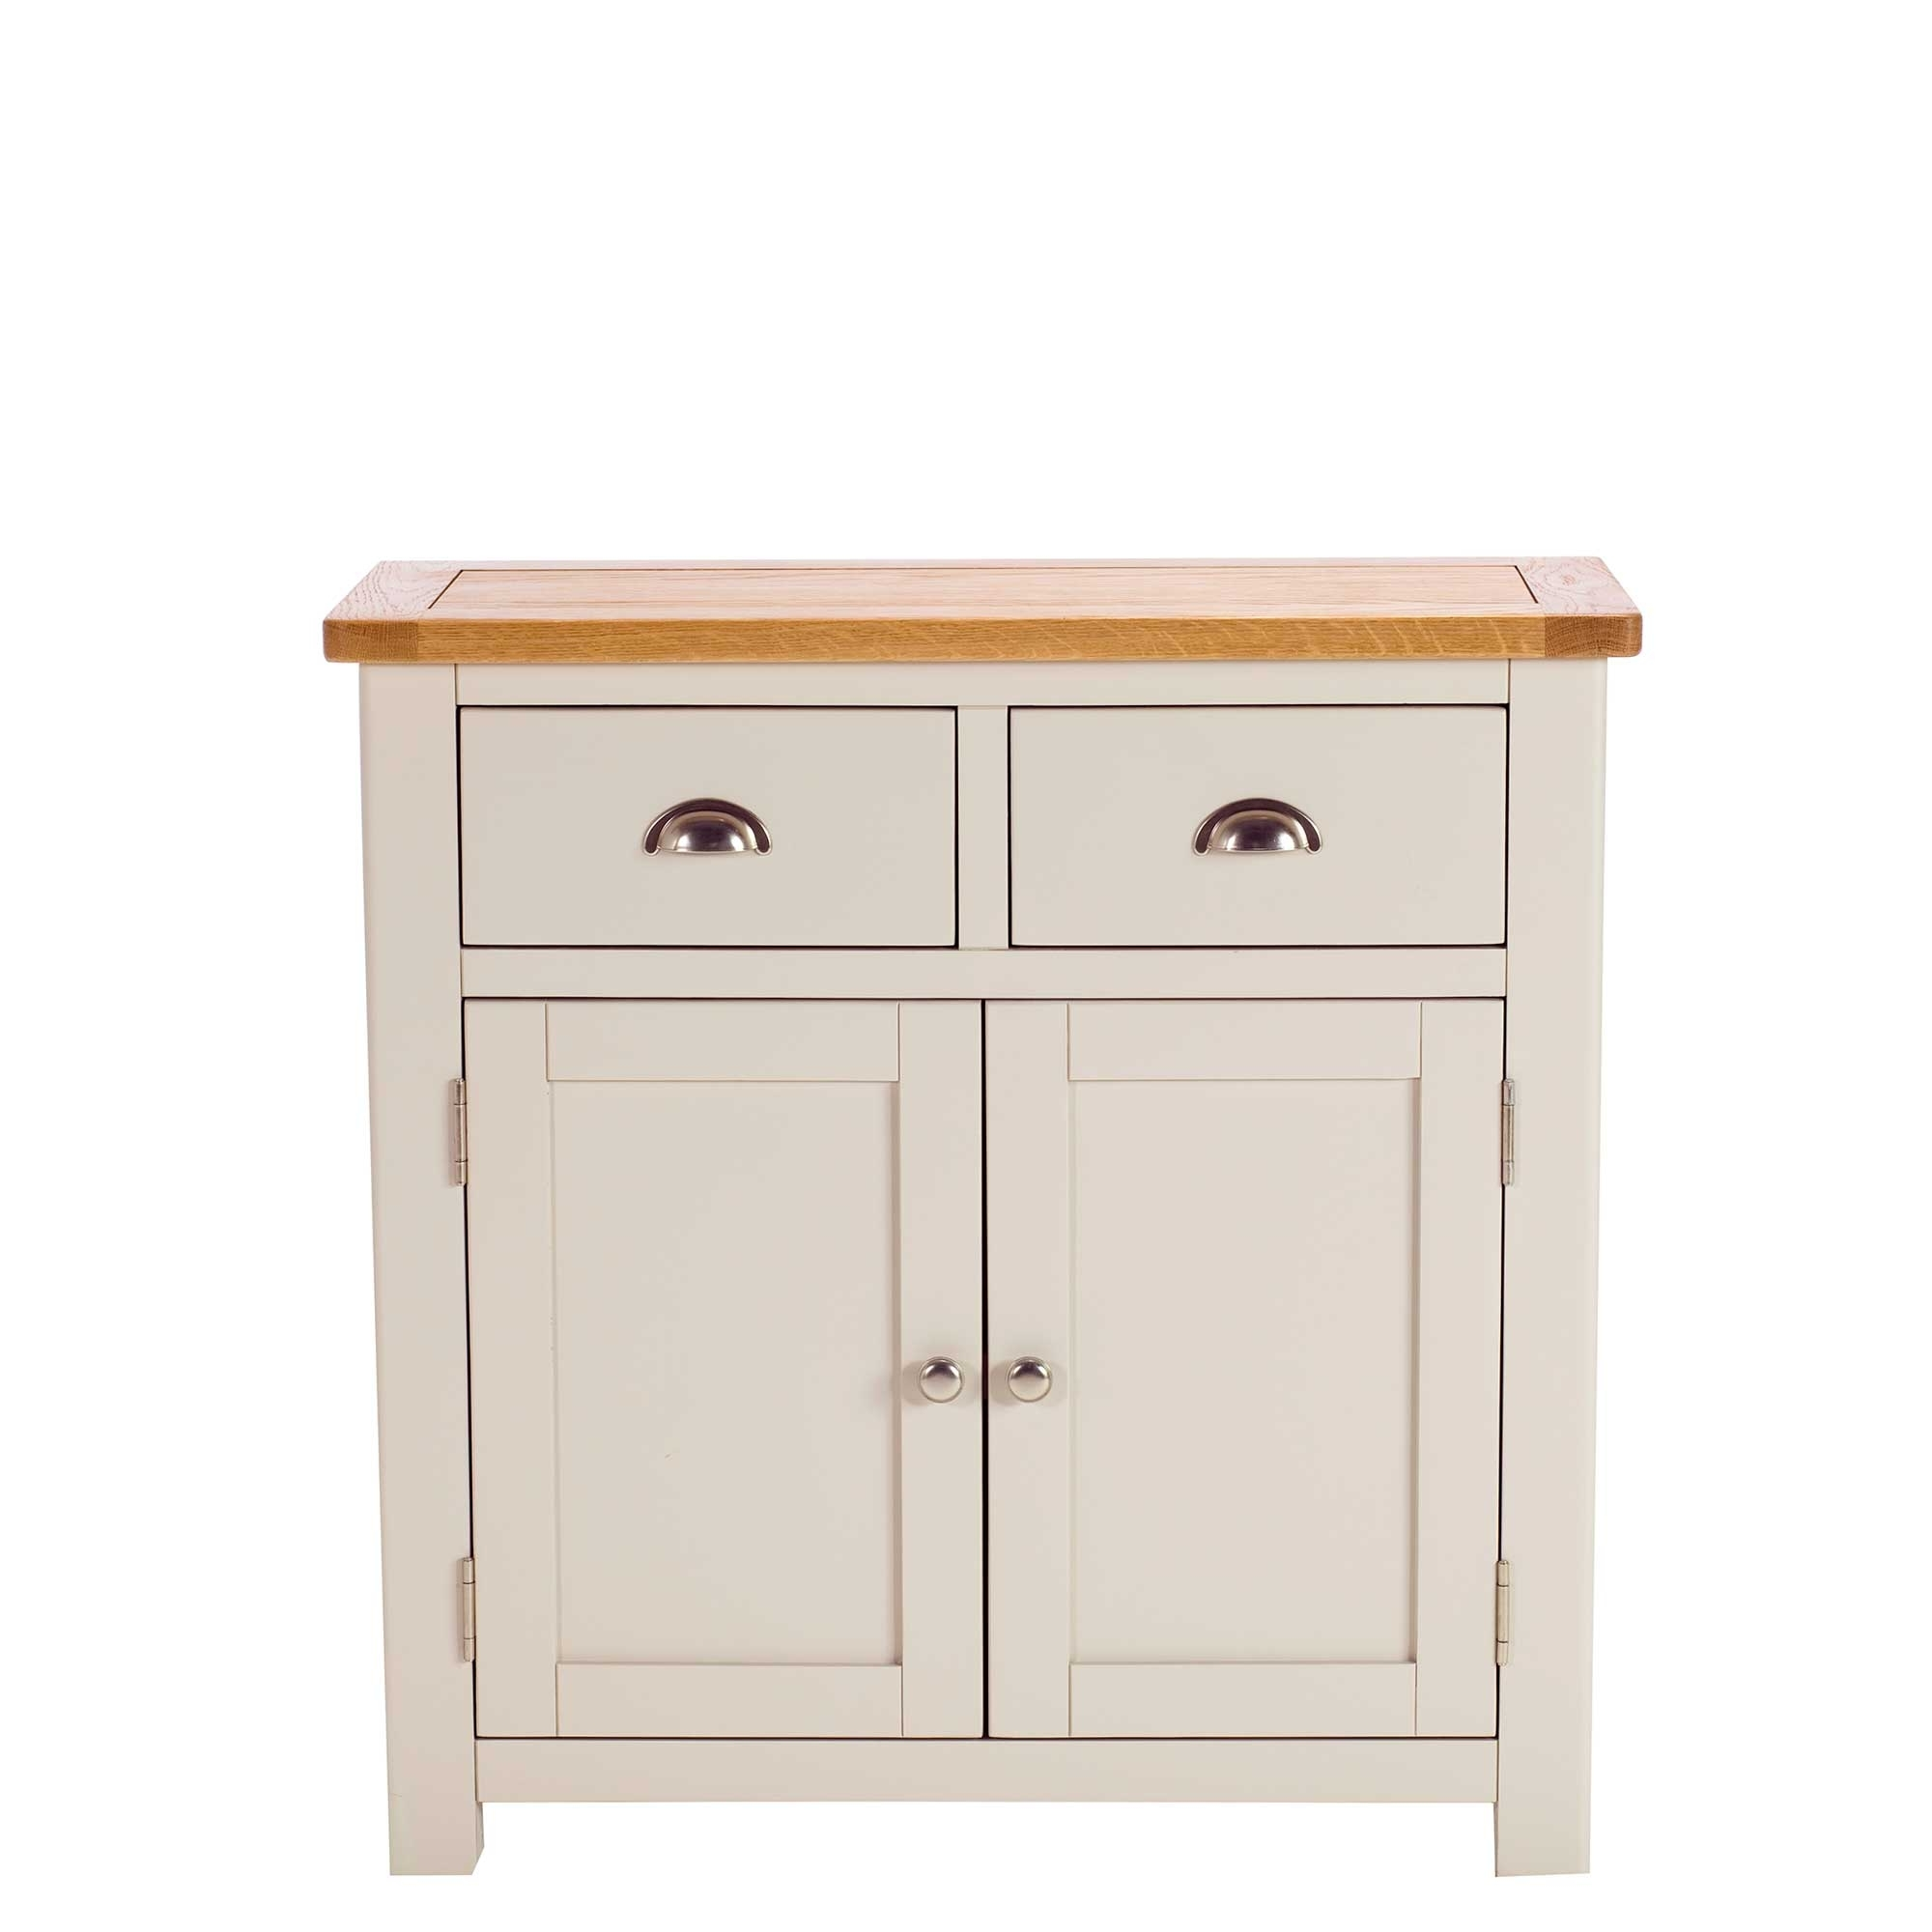 Eskdale 2 Door 2 Drawer Sideboard, Linen | Sideboards | Dining Room Inside 2 Drawer Sideboards (Photo 10 of 30)